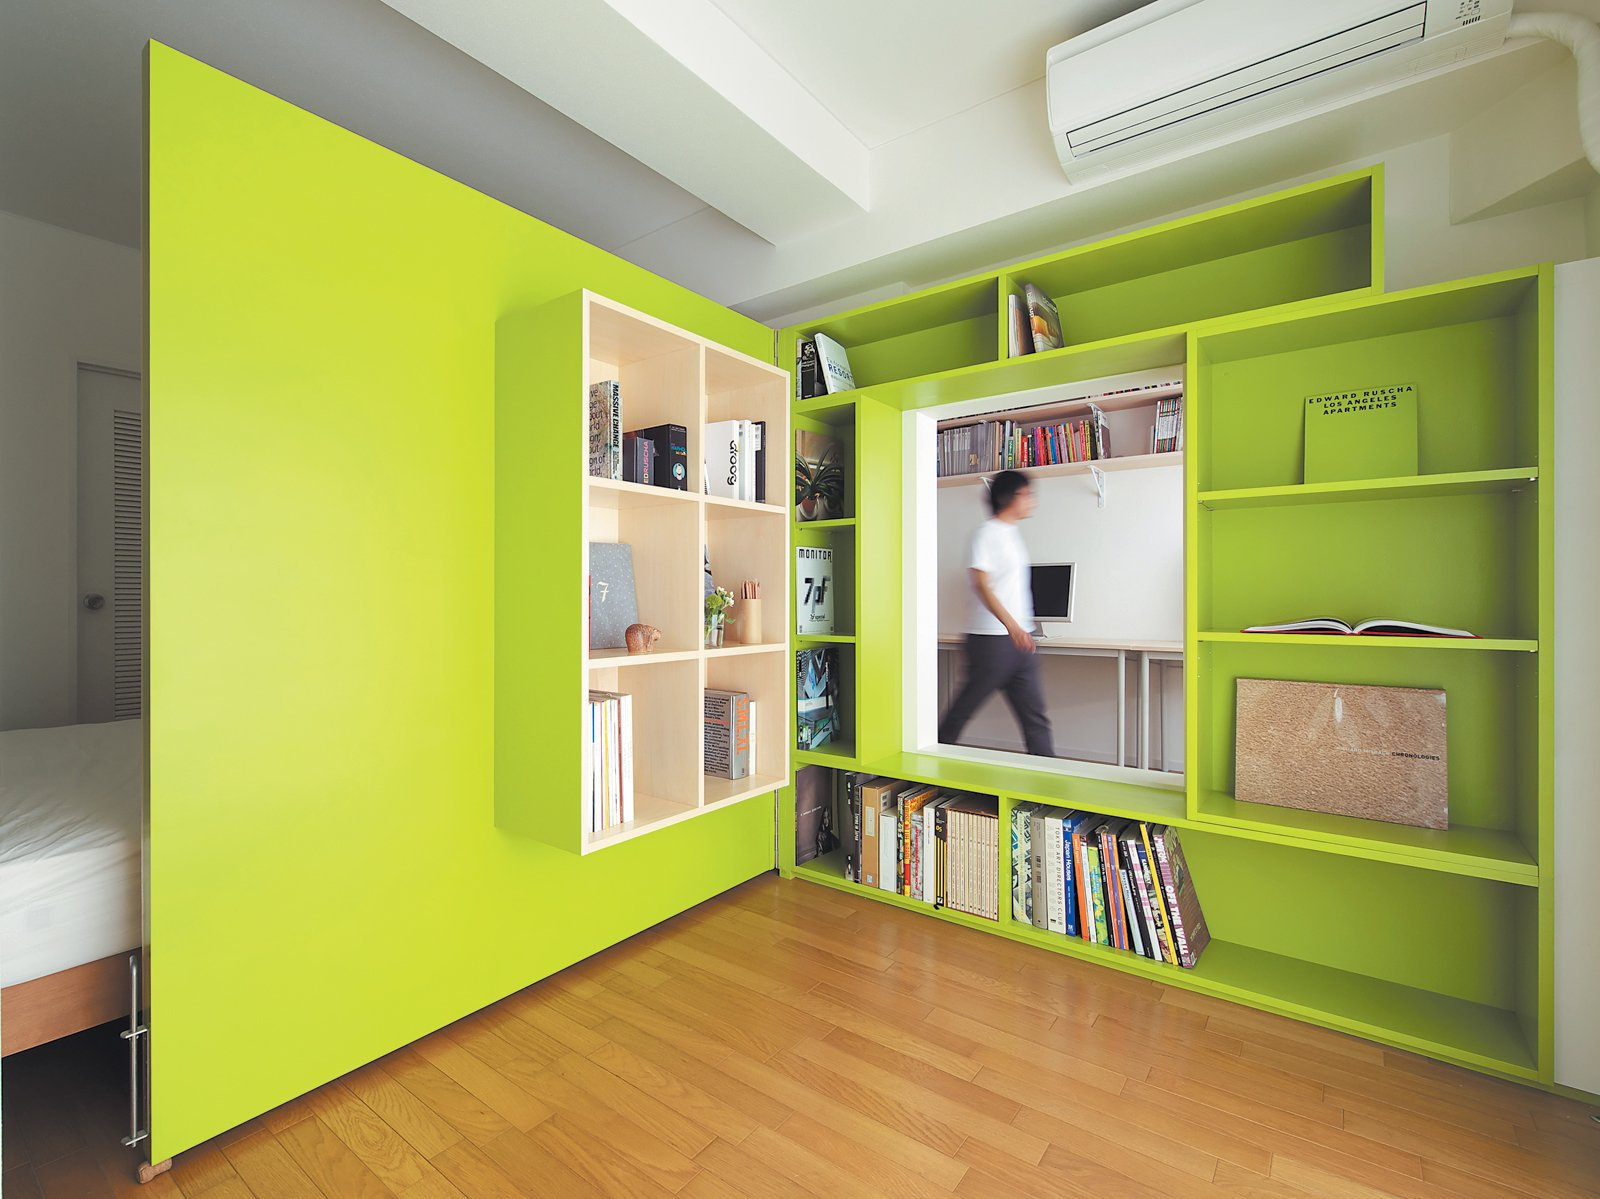 Shibata wanted more shelf space in her home office, so she added a plywood door with built-in bookshelves that opens into her bedroom to form a reading nook. Glimpsed from the adjacent room, the space looks larger than it actually is, thanks to the bright green walls. Home Offices and Workspaces We Love by Matthew Keeshin